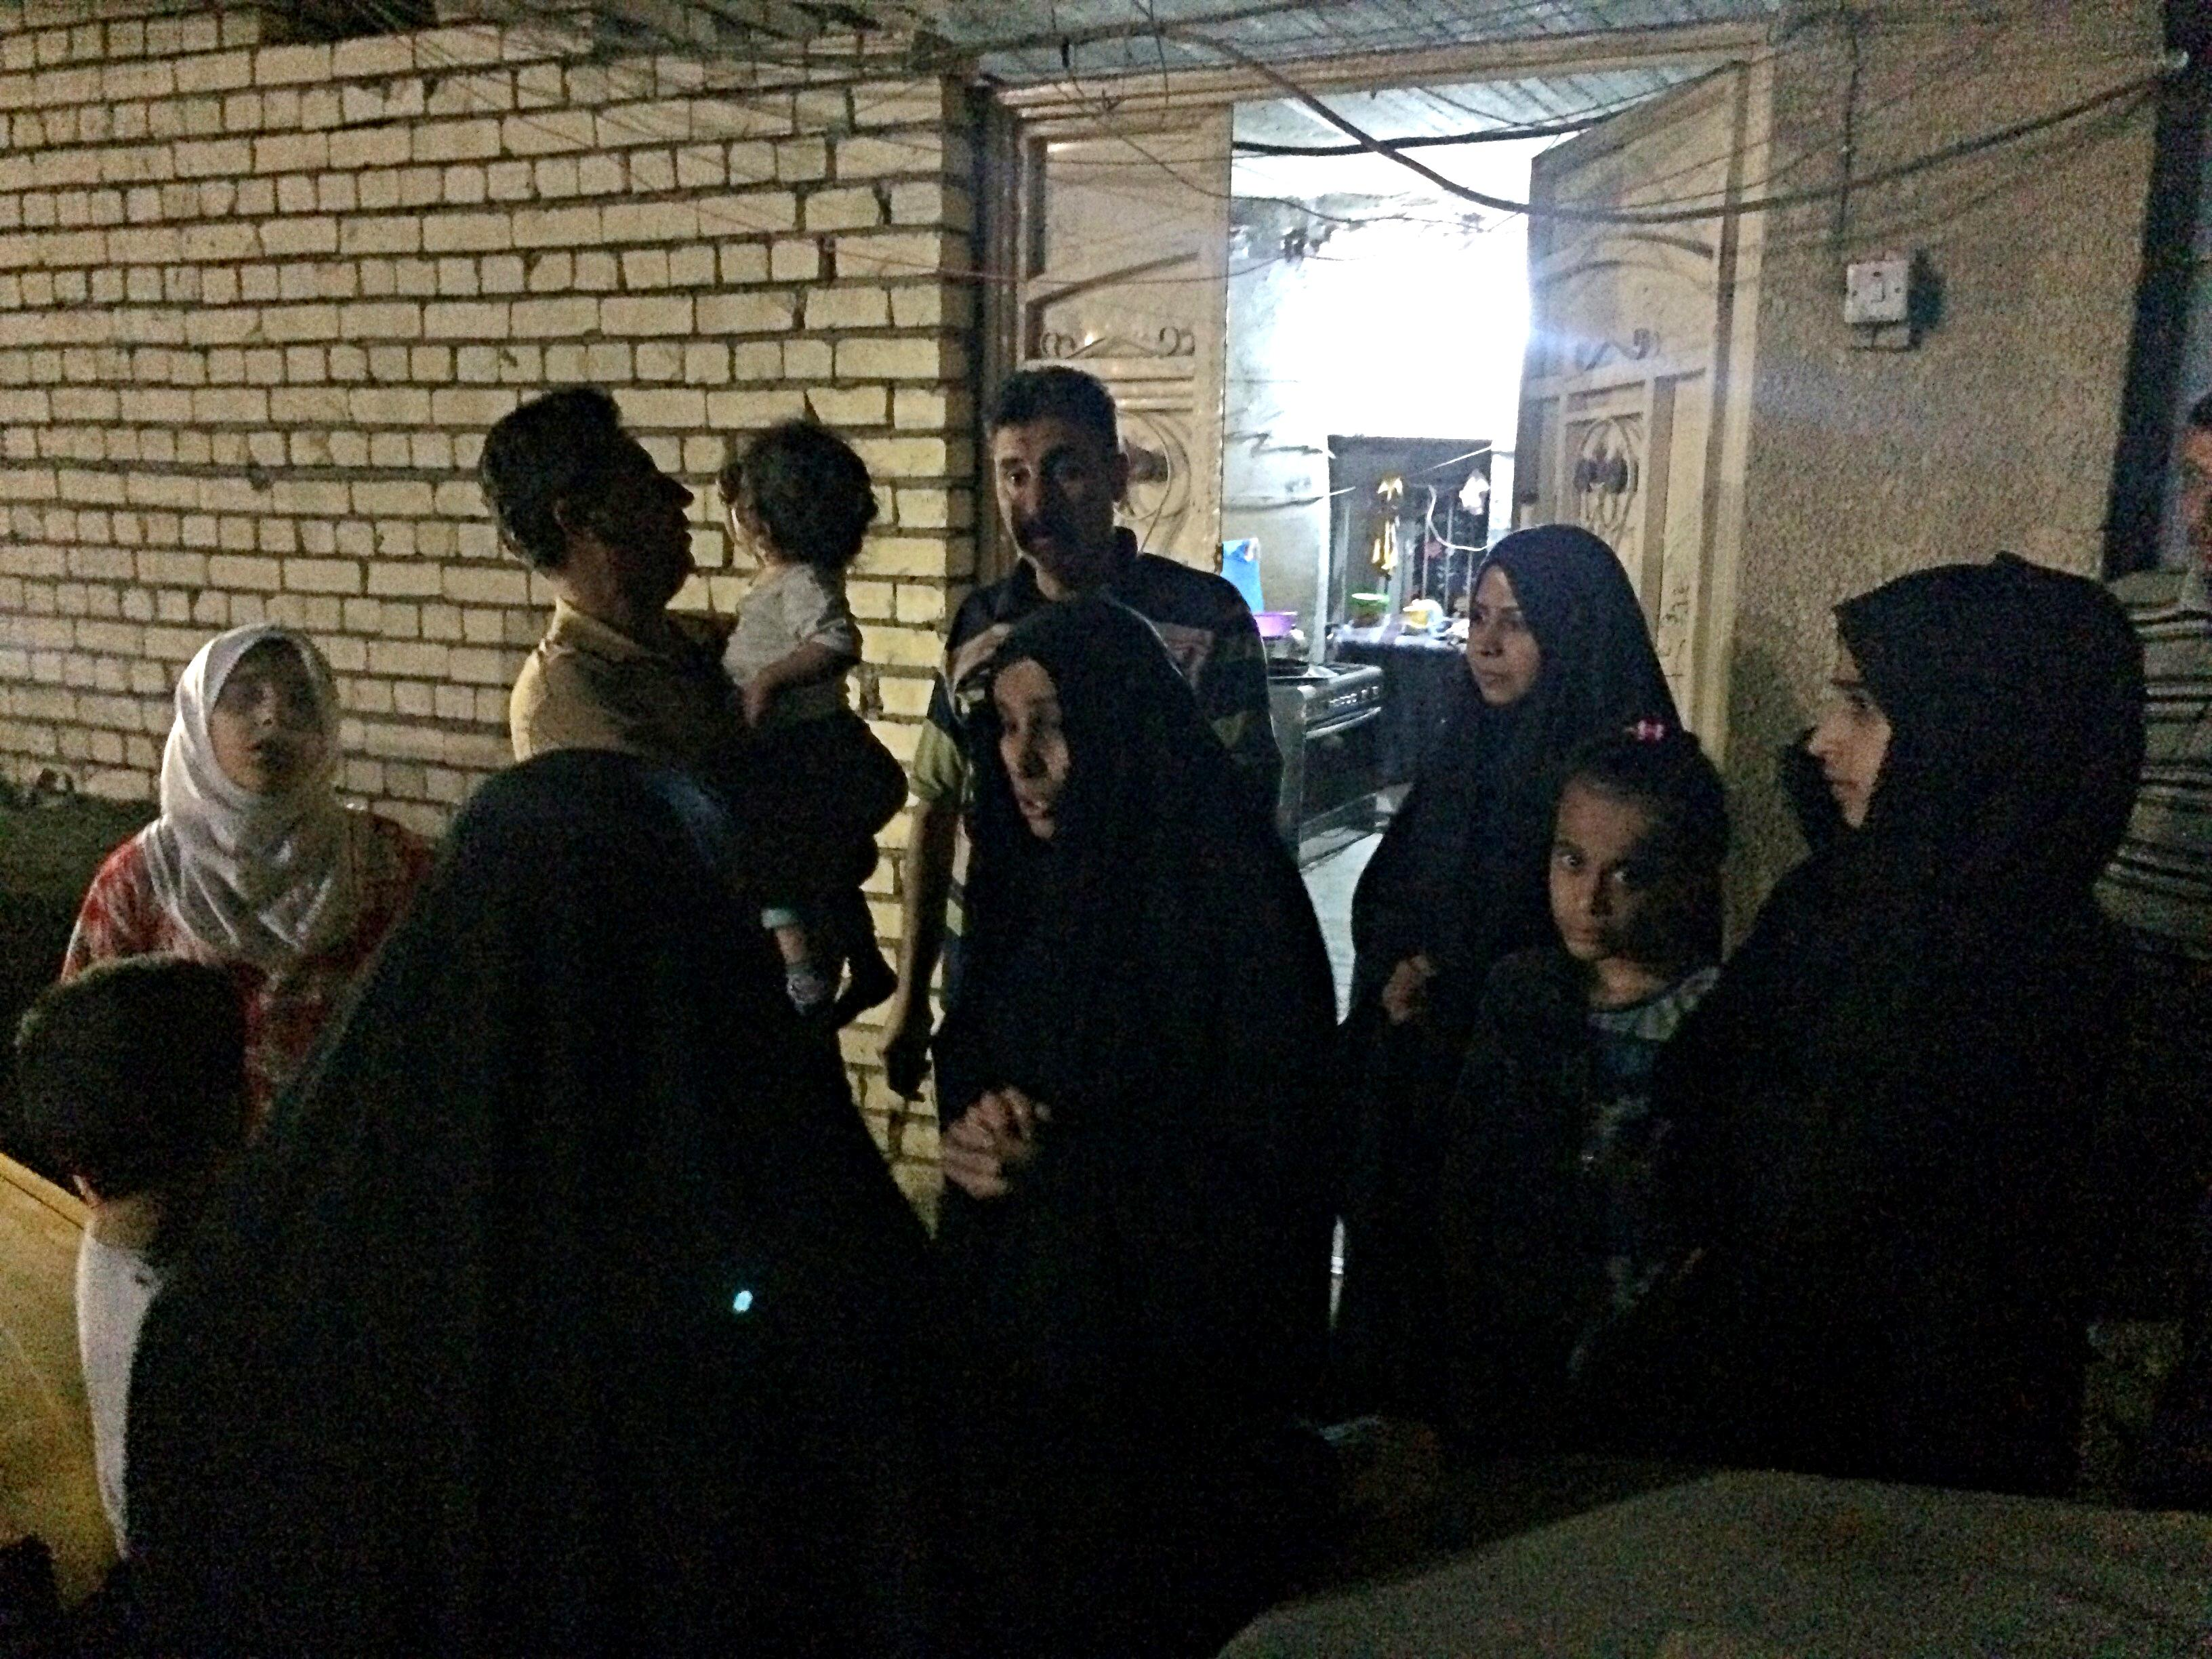 People stand in the street after feeling aftershocks from an earthquake in Baghdad, Iraq, Sunday, Nov. 12, 2017. The deadly earthquake hit the region along the border between Iran and Iraq on Sunday. The U.S. Geological Survey said the quake was centered 19 miles (31 kilometers) outside the eastern Iraqi city of Halabja. (AP Photo/Hadi Mizban)